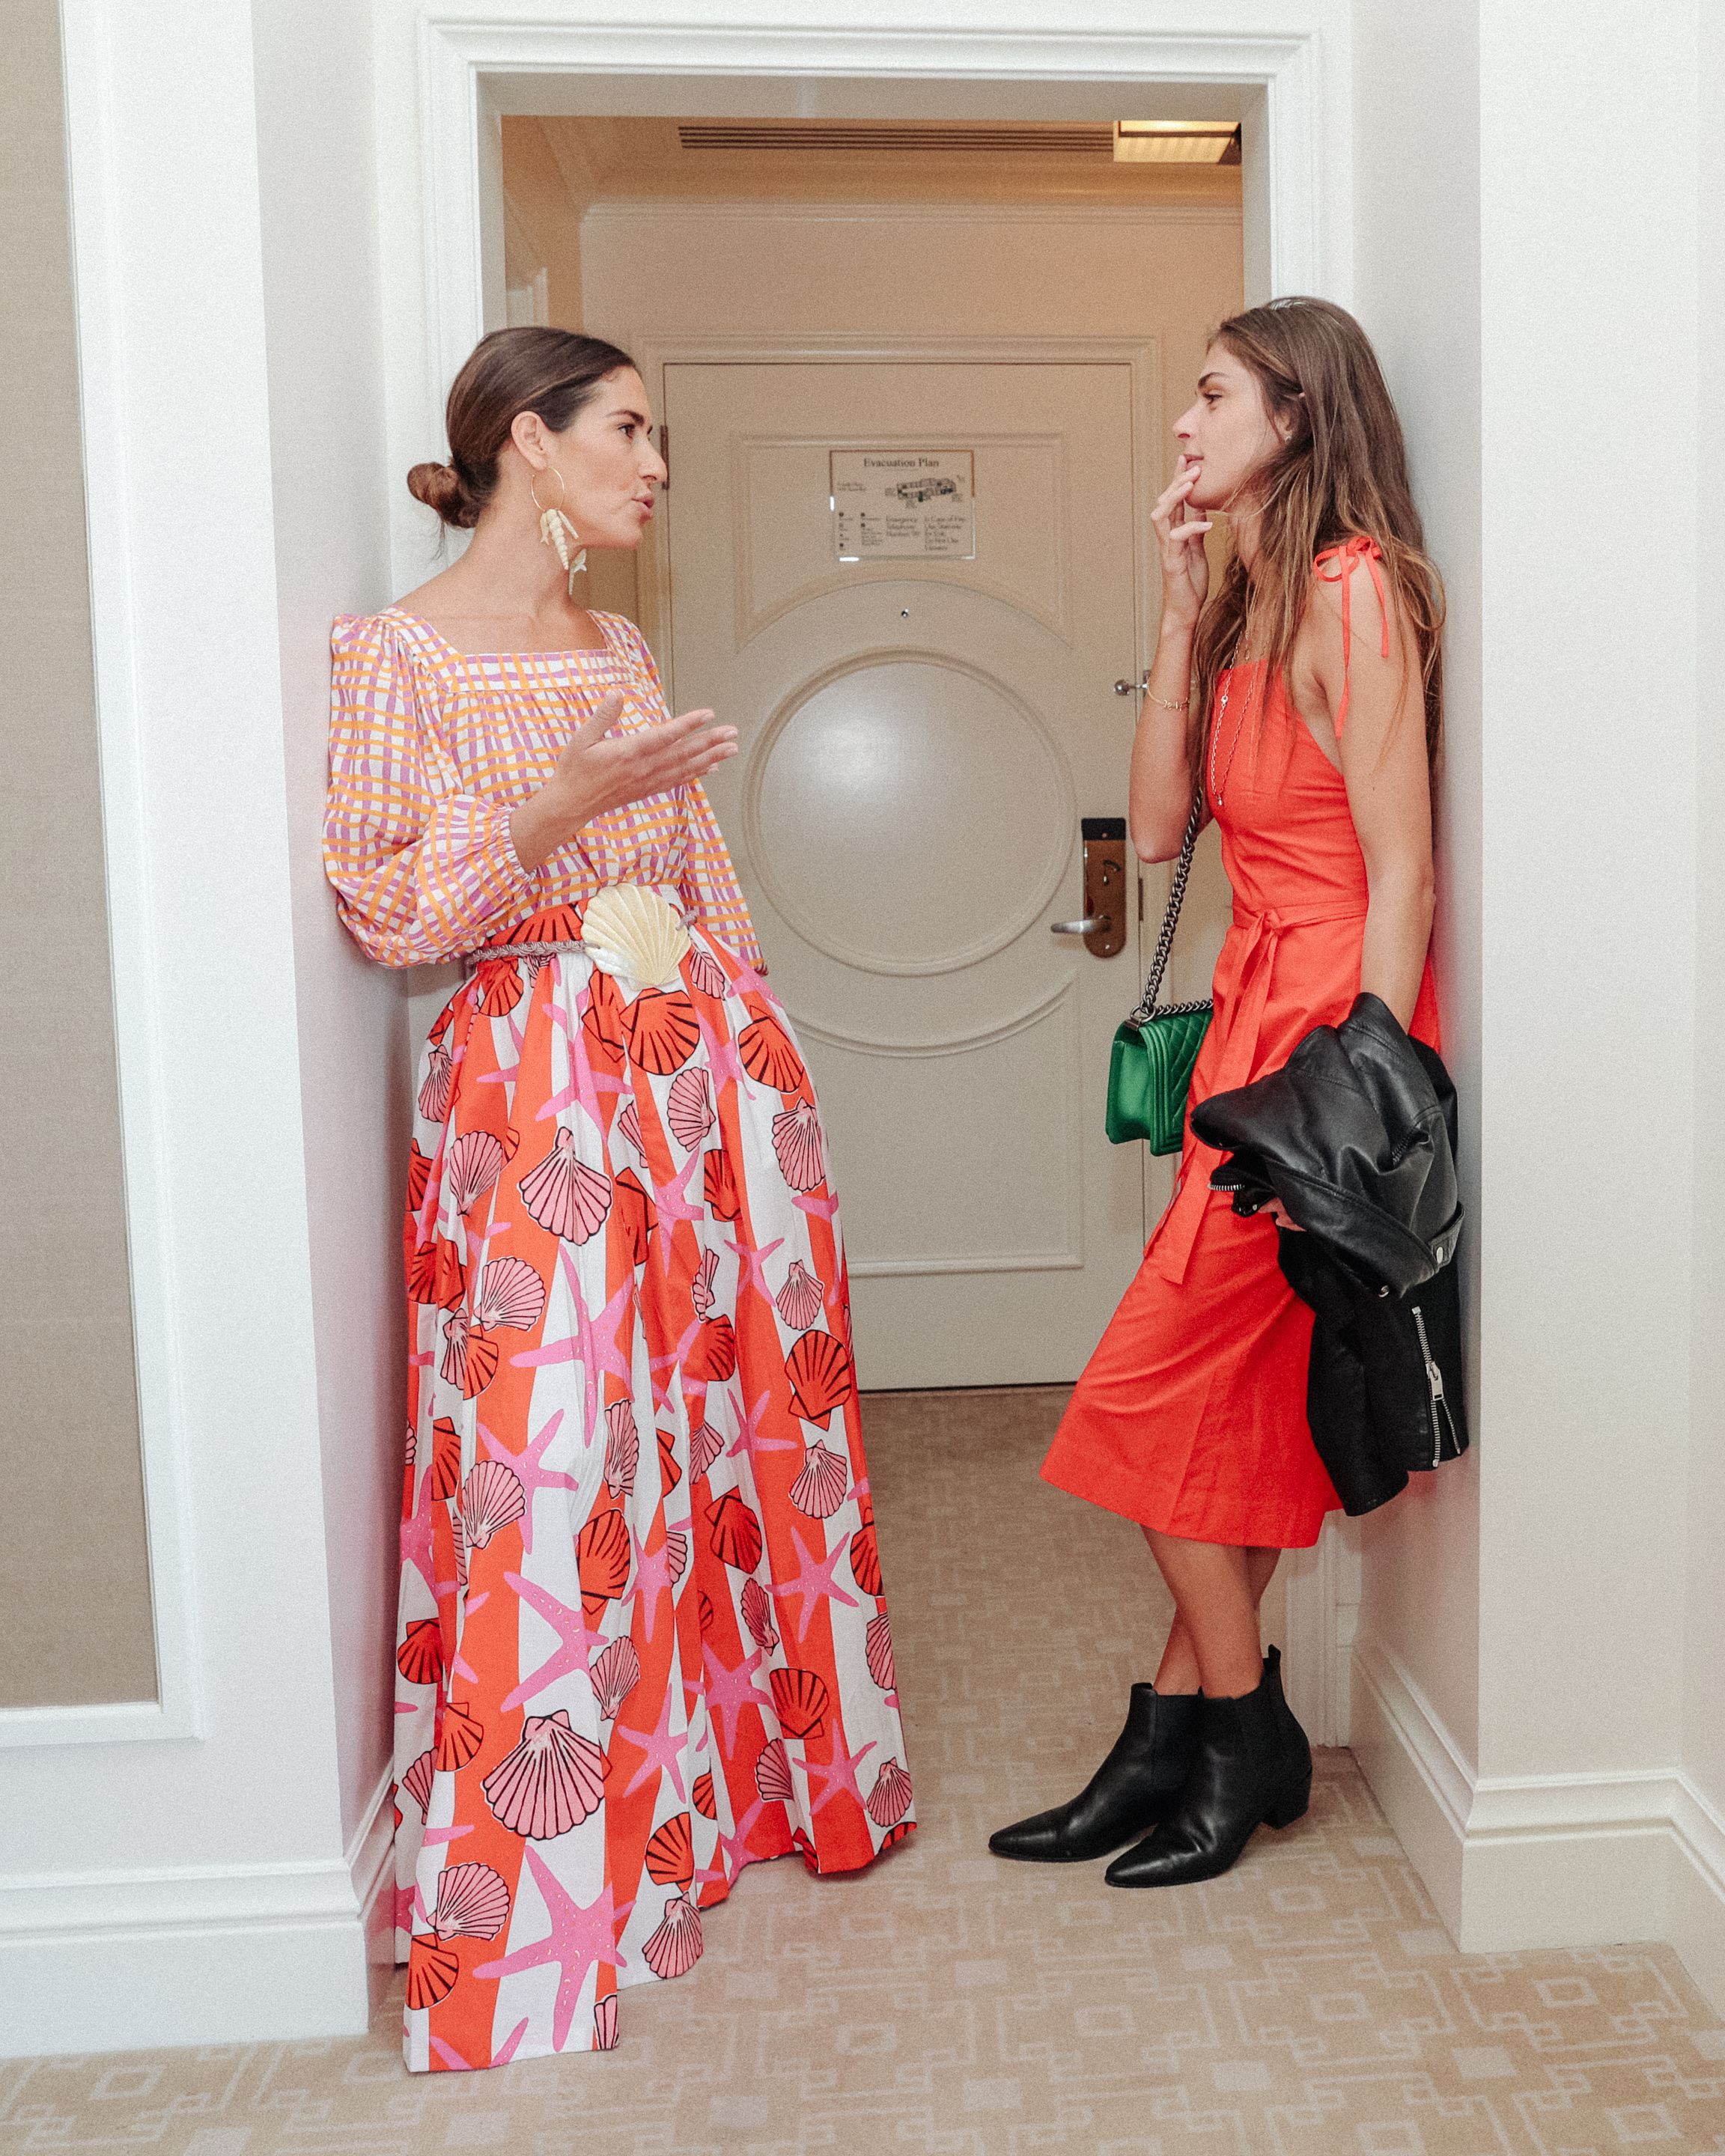 Launch collection of LHD with Laure Hériard Dubreuil : at The Beverly Hills Hotel